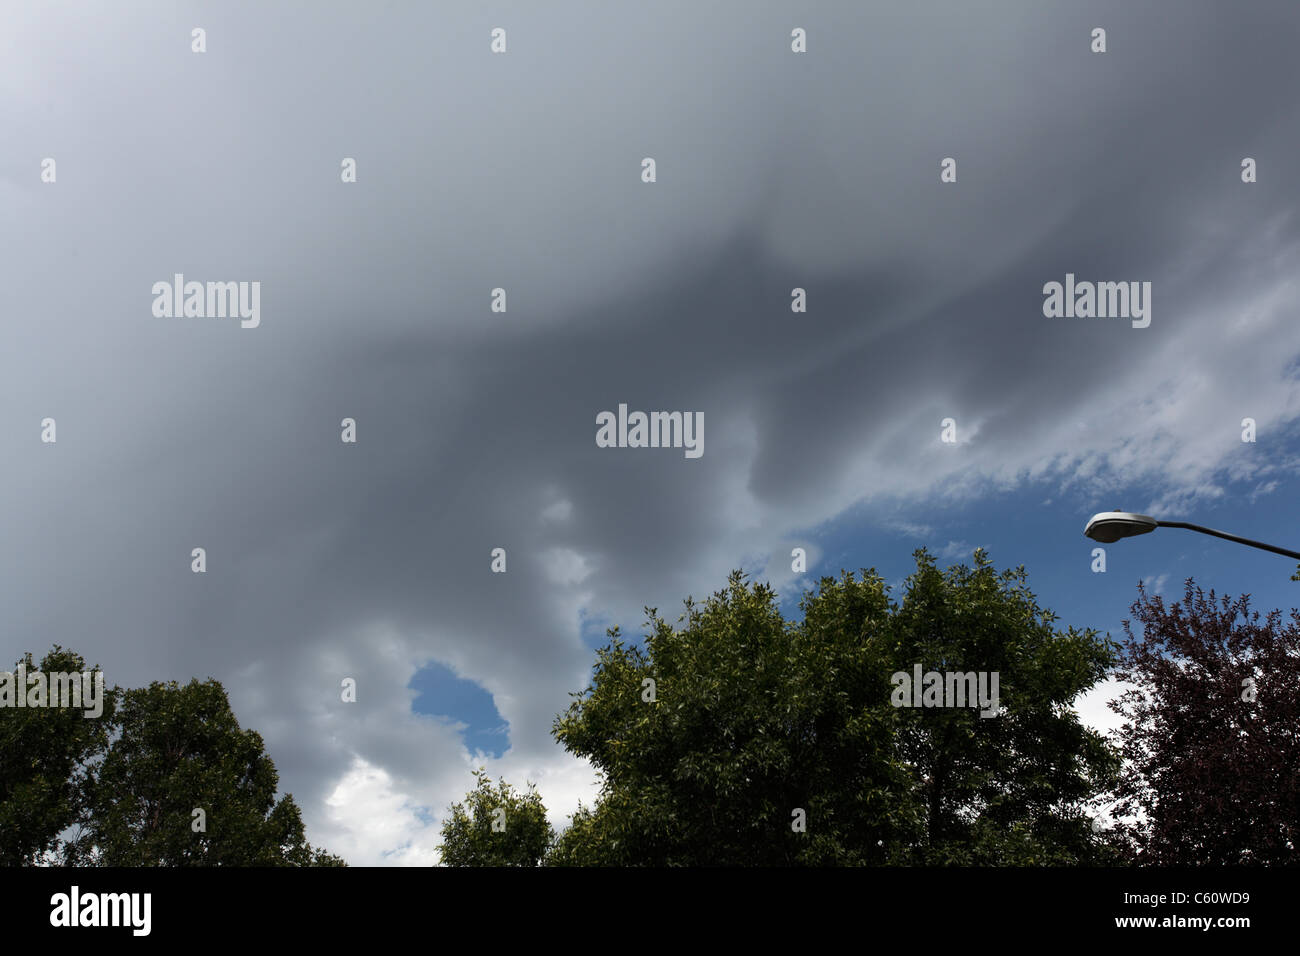 Strange dropping tube-like appendages of a strong thunderstorm, possible undulati. - Stock Image